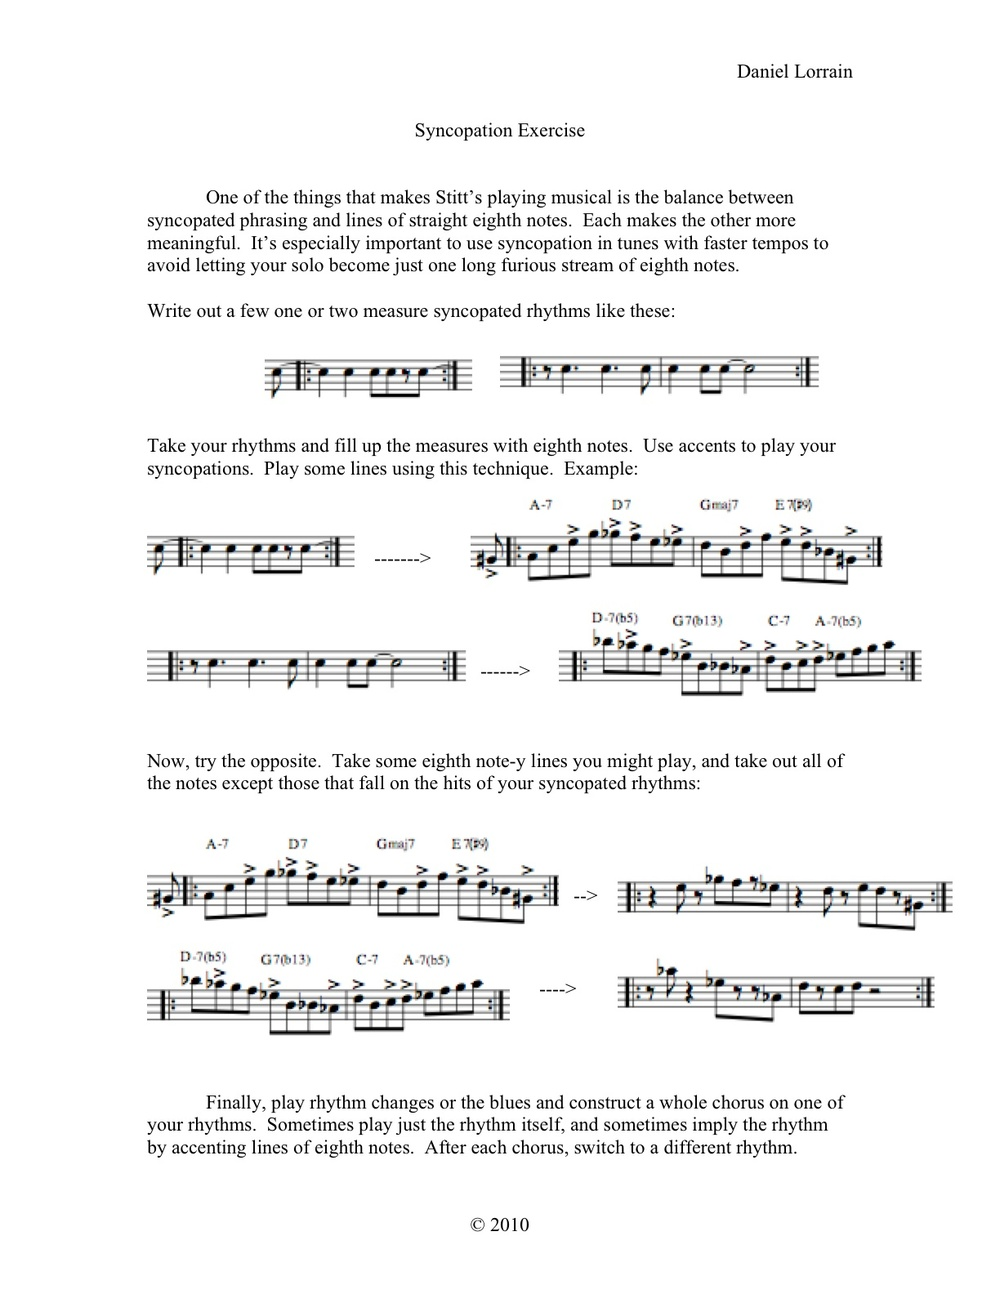 Syncopation Exercise